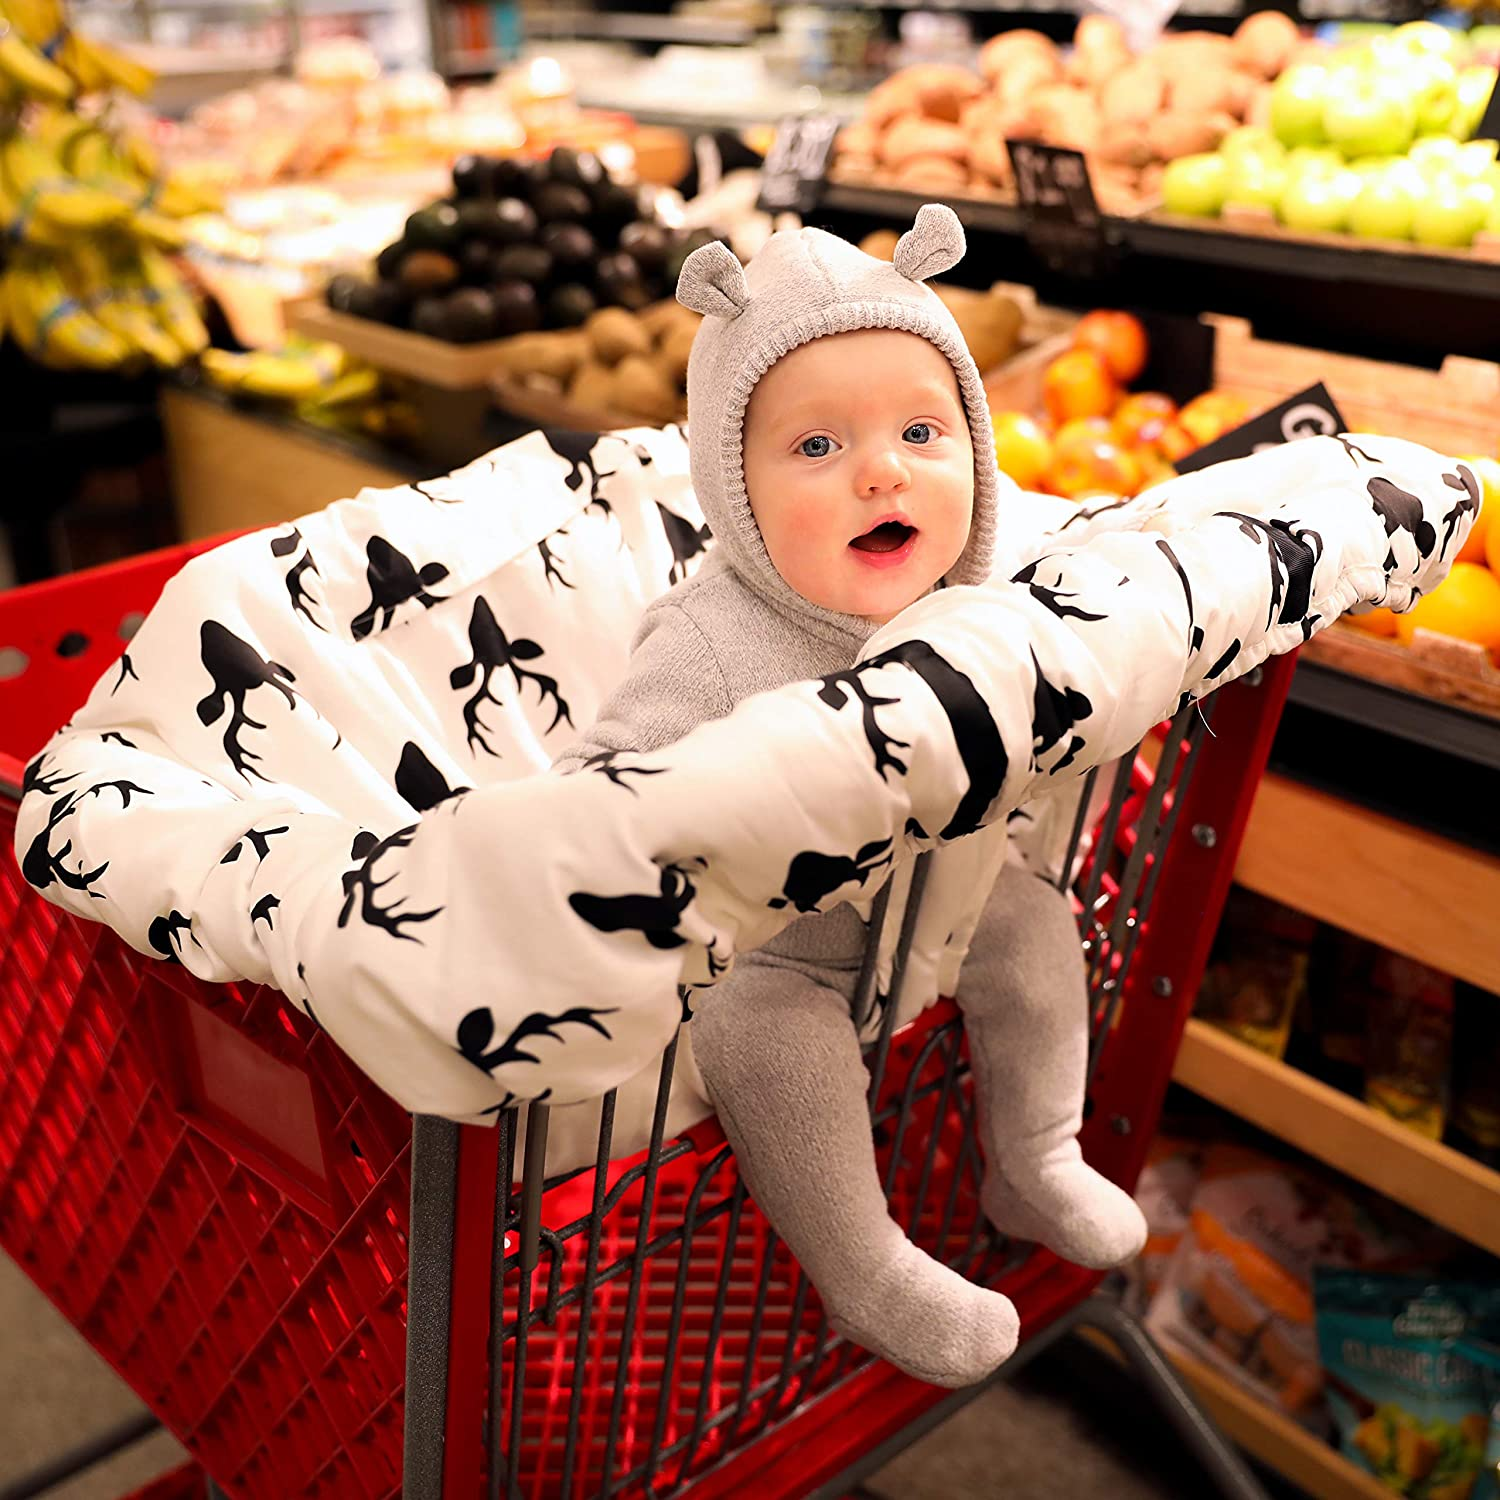 Shopping cart Covers for Baby | High Chair and Grocery Cover for Babies